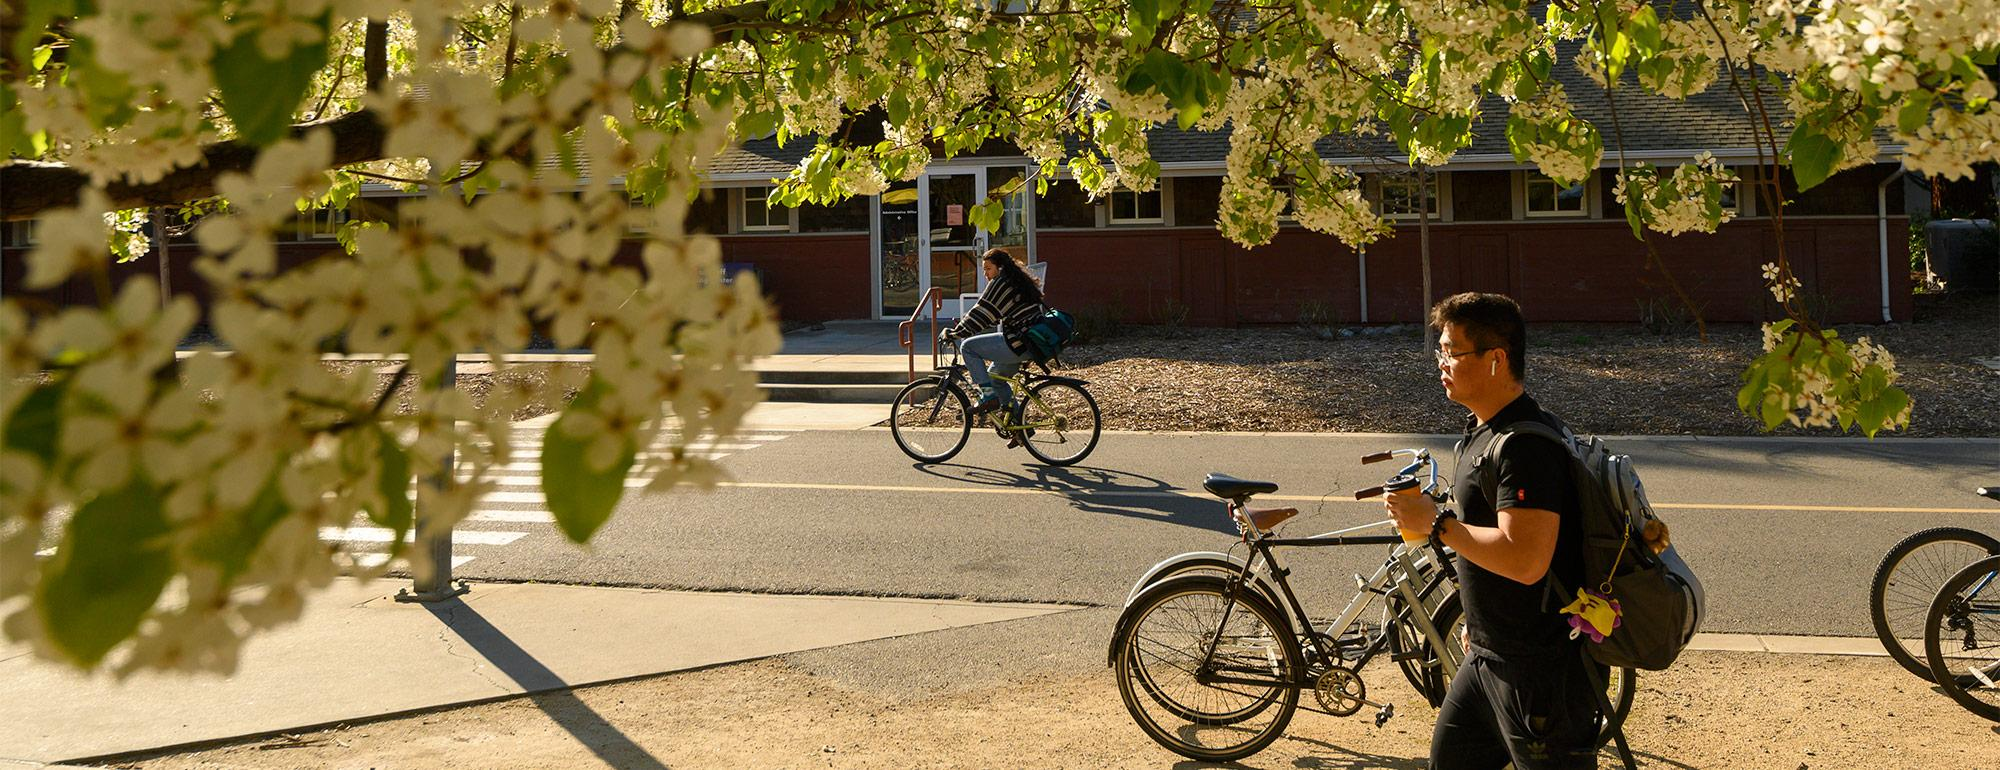 a student walking on campus near some flowering trees and a person on a bike in the background